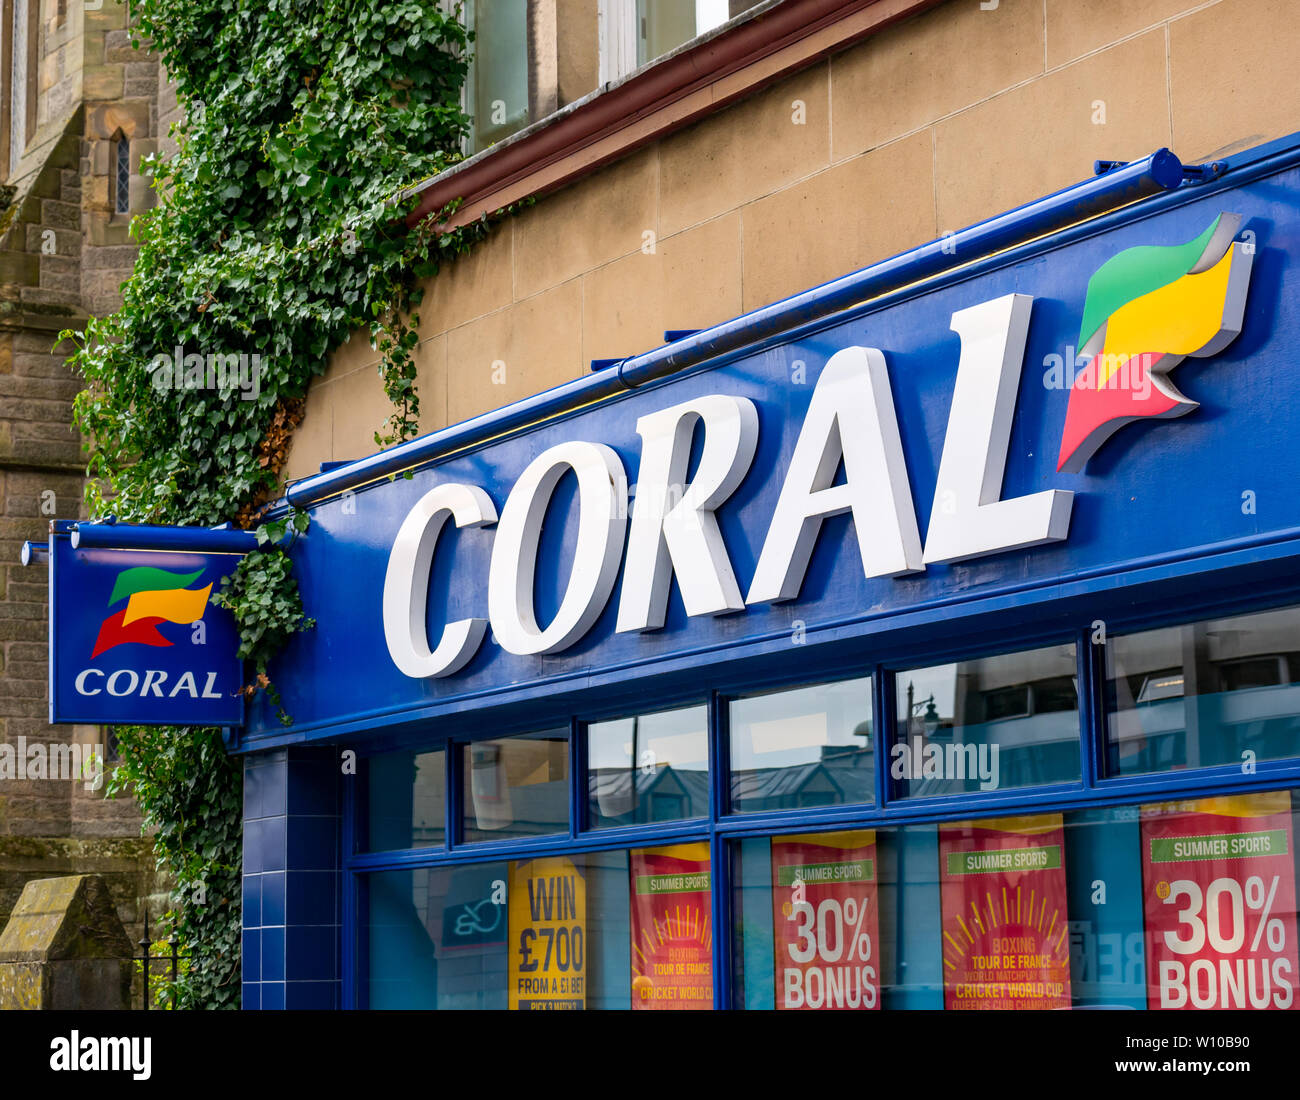 Coral bookmakers betting shop name sign, Barnton Street, Stirling, Scotland, UK Stock Photo